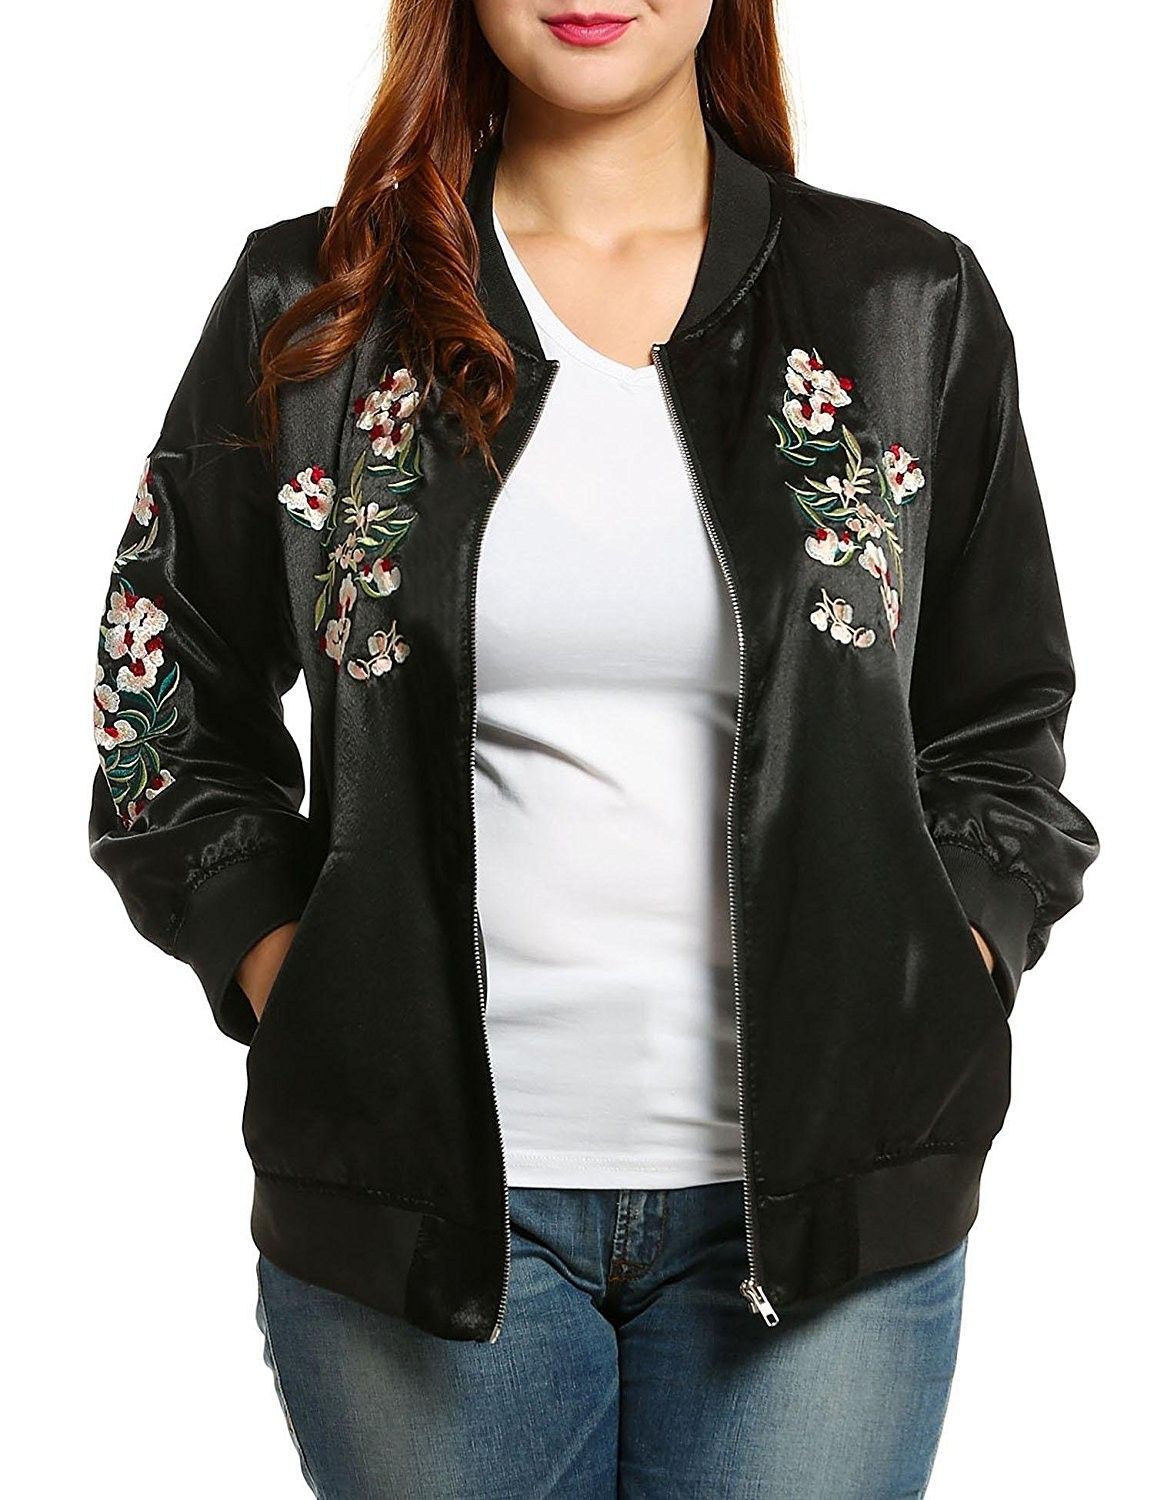 b867bc435 Women's Embroidered Floral Phenix Plus Size Vintage Casual Bomber ...